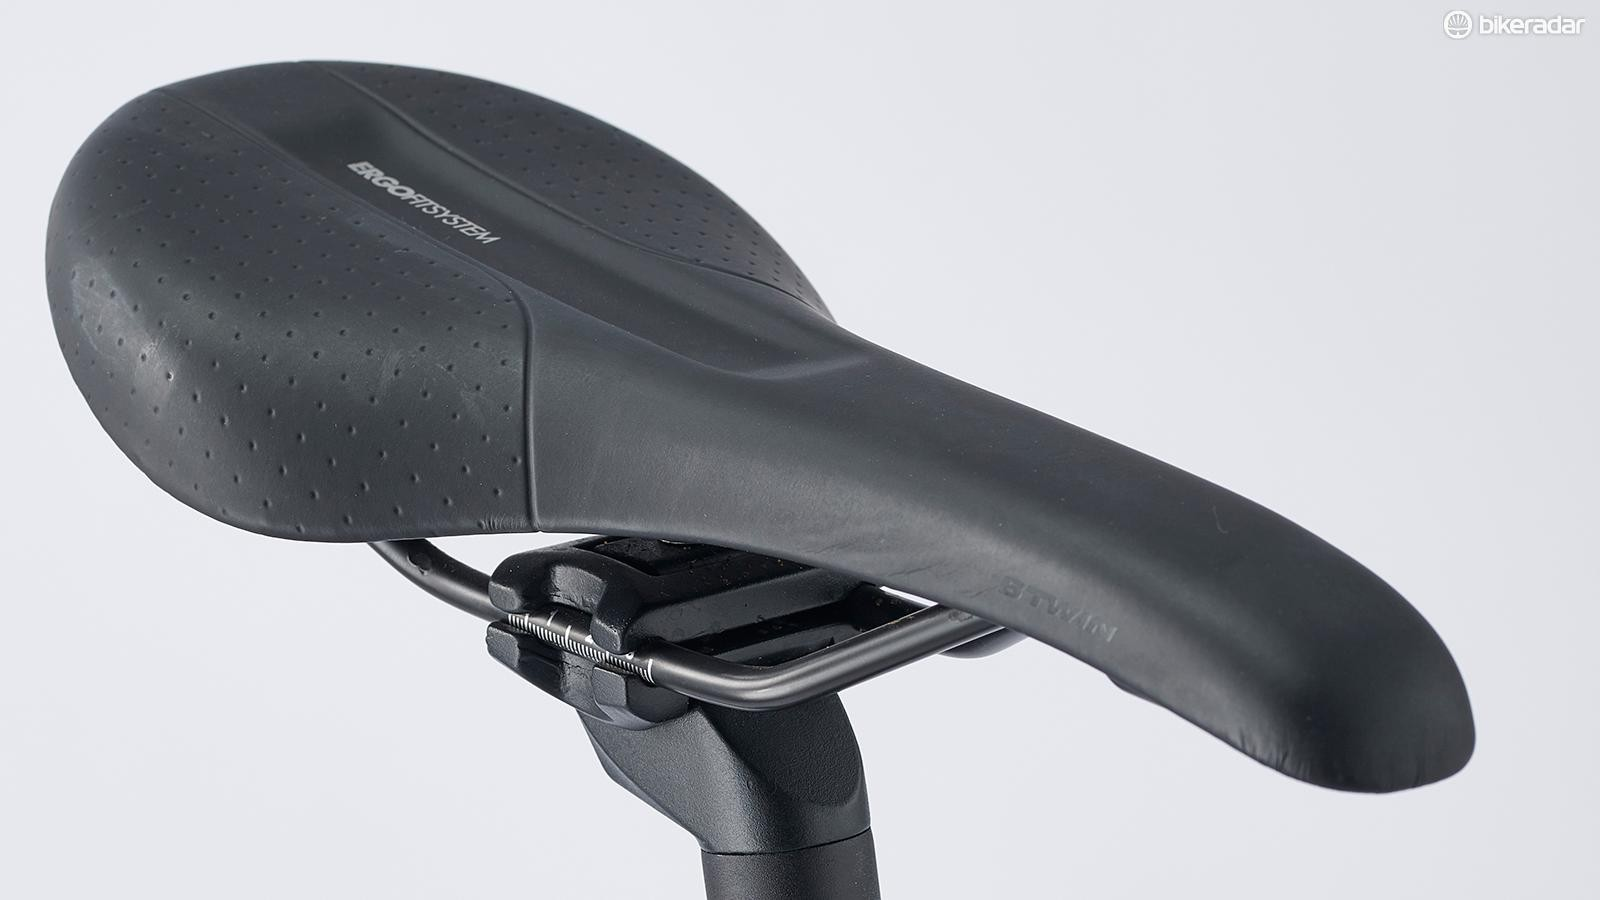 Triban's ErgoFit saddle